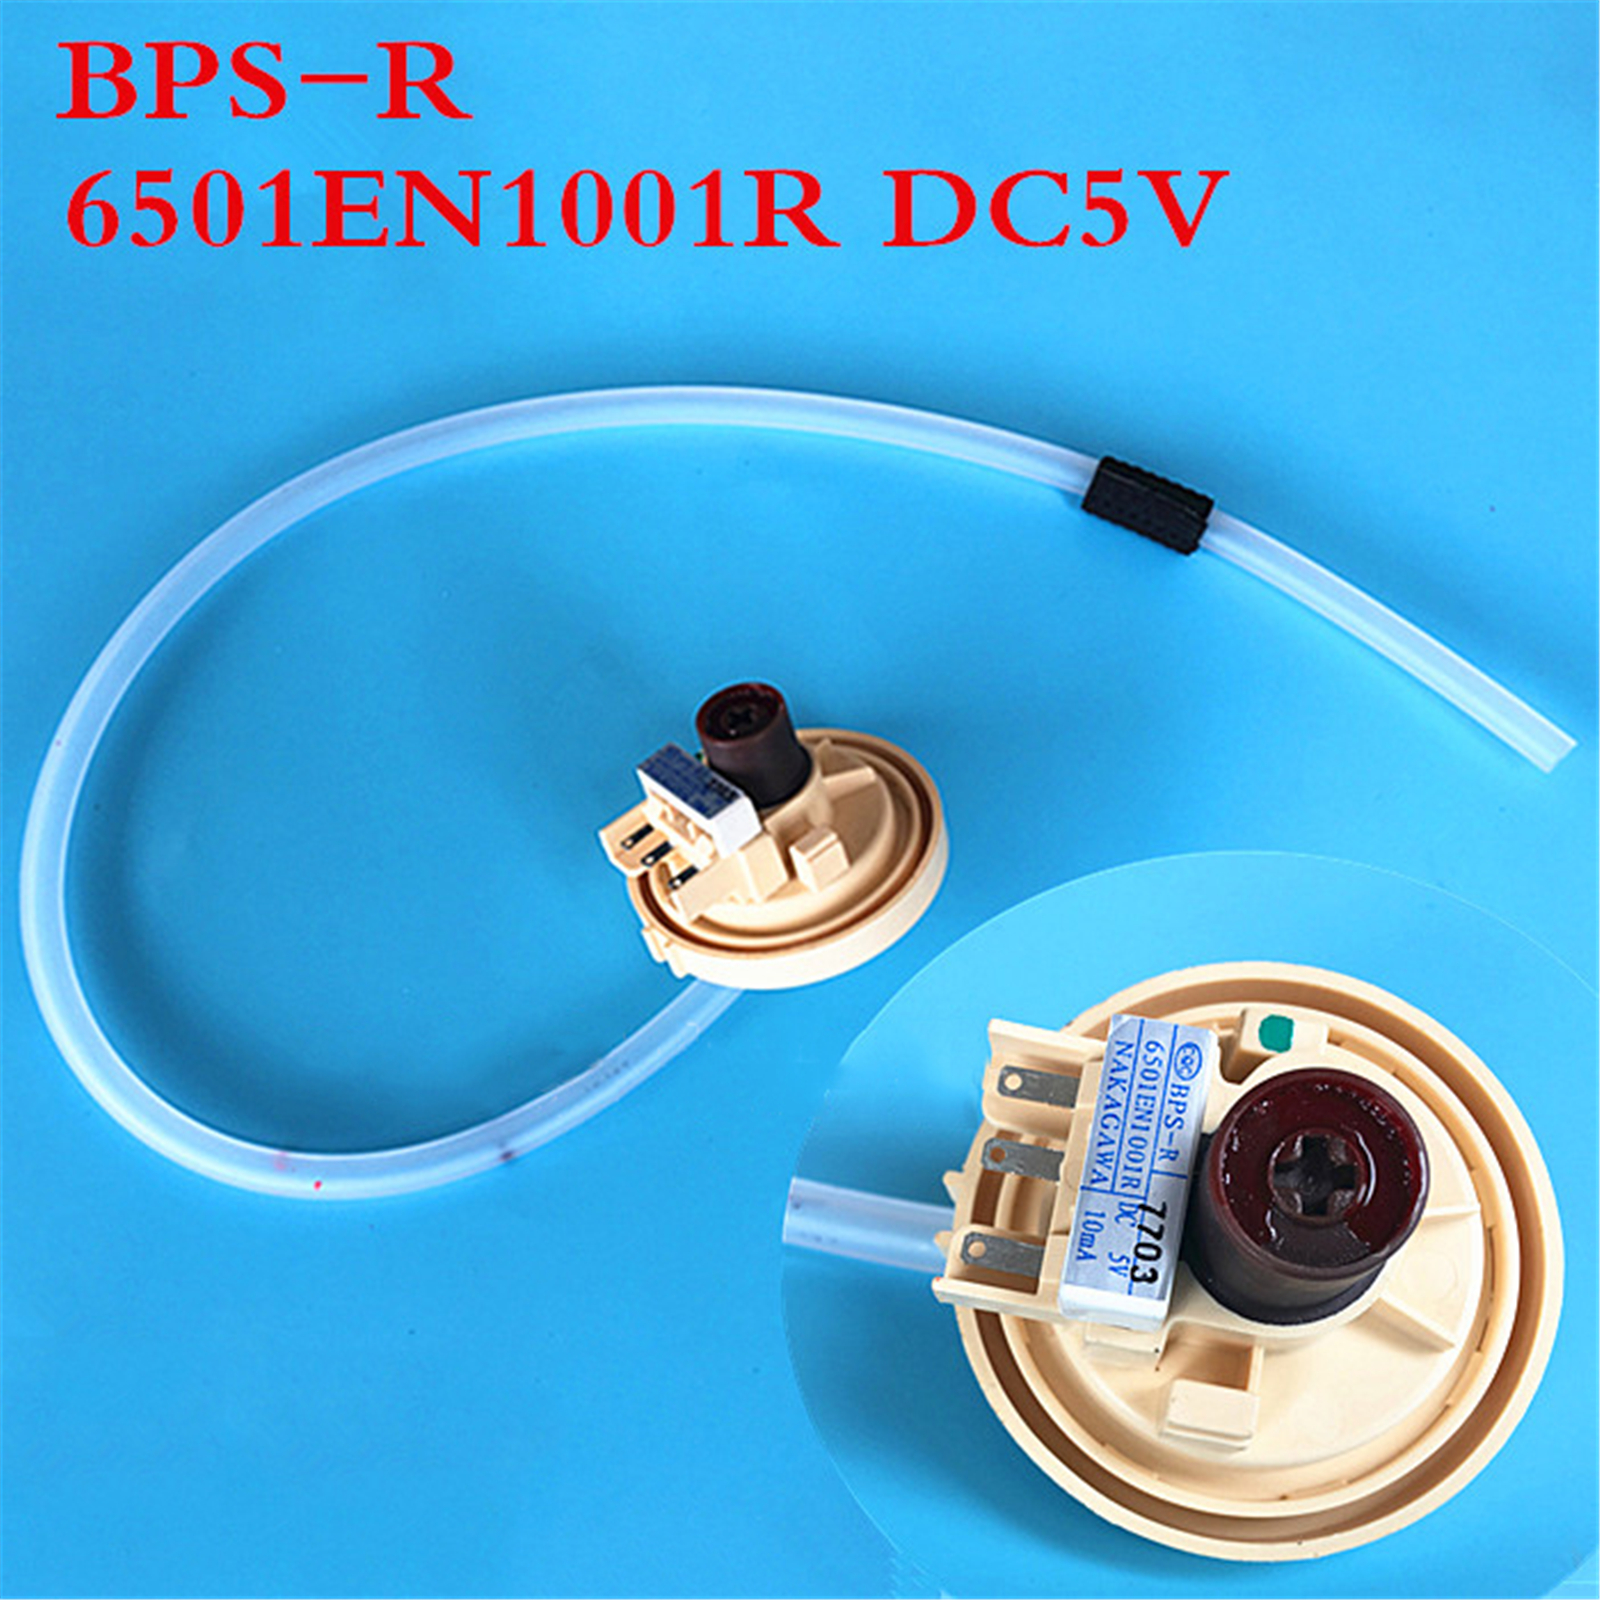 Replacement Water Level Pressure Sensor Switch For LG Automatic Washing Machine  BPS-R 6501EA1001R Controller Switch